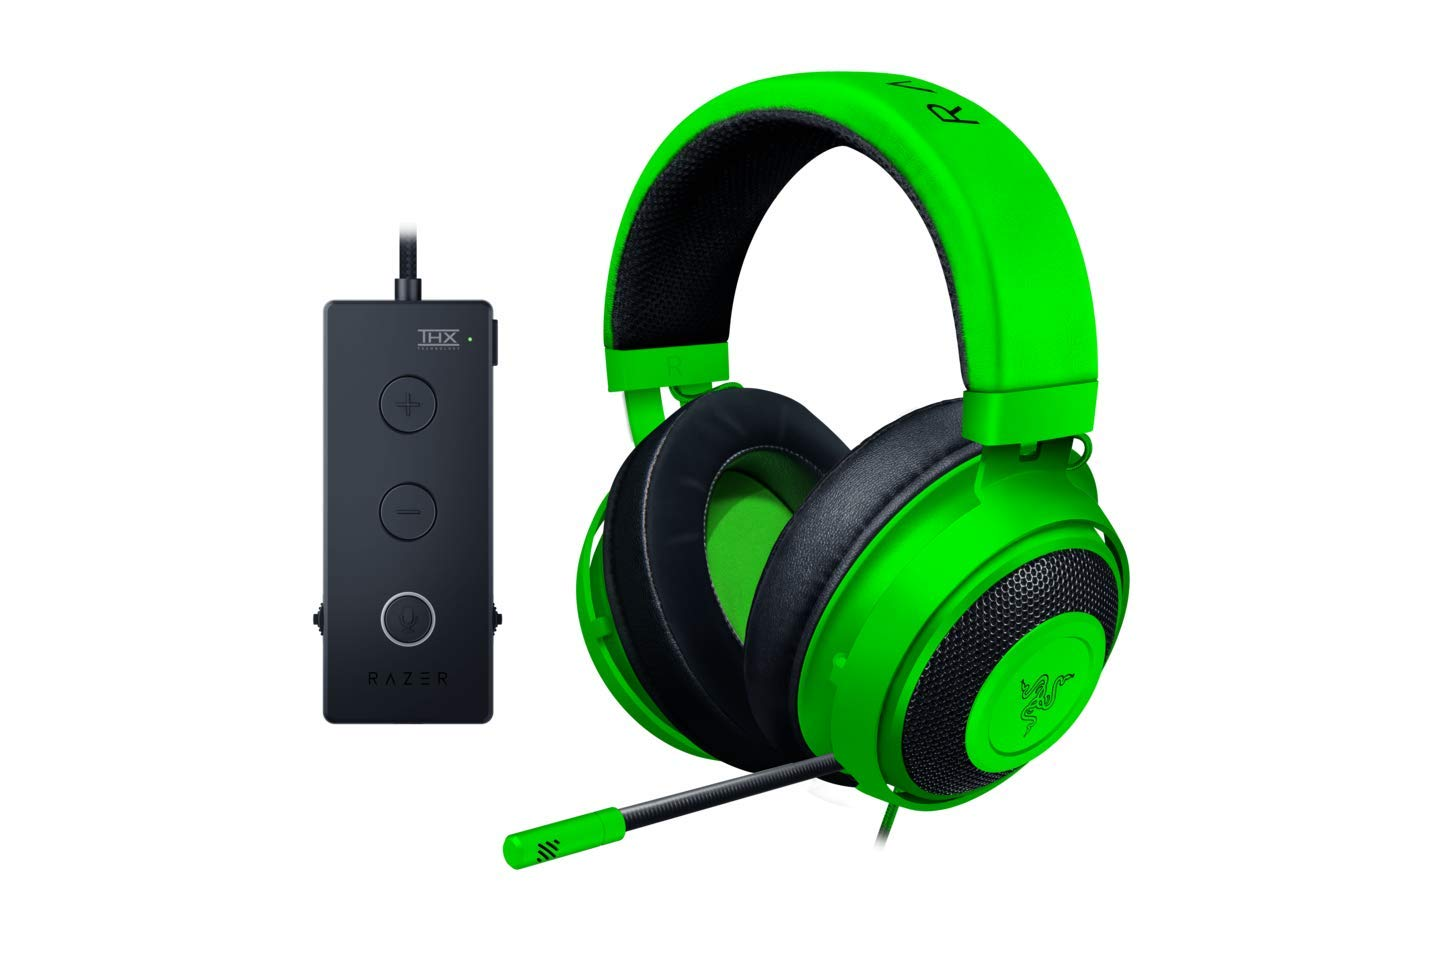 Razer Kraken Tournament Edition THX 7.1 Surround Sound Gaming Headset: Aluminum Frame - Retractable Noise Cancelling Mic - USB DAC Included - for PC, Xbox, PS4, Nintendo Switch - Green by Razer